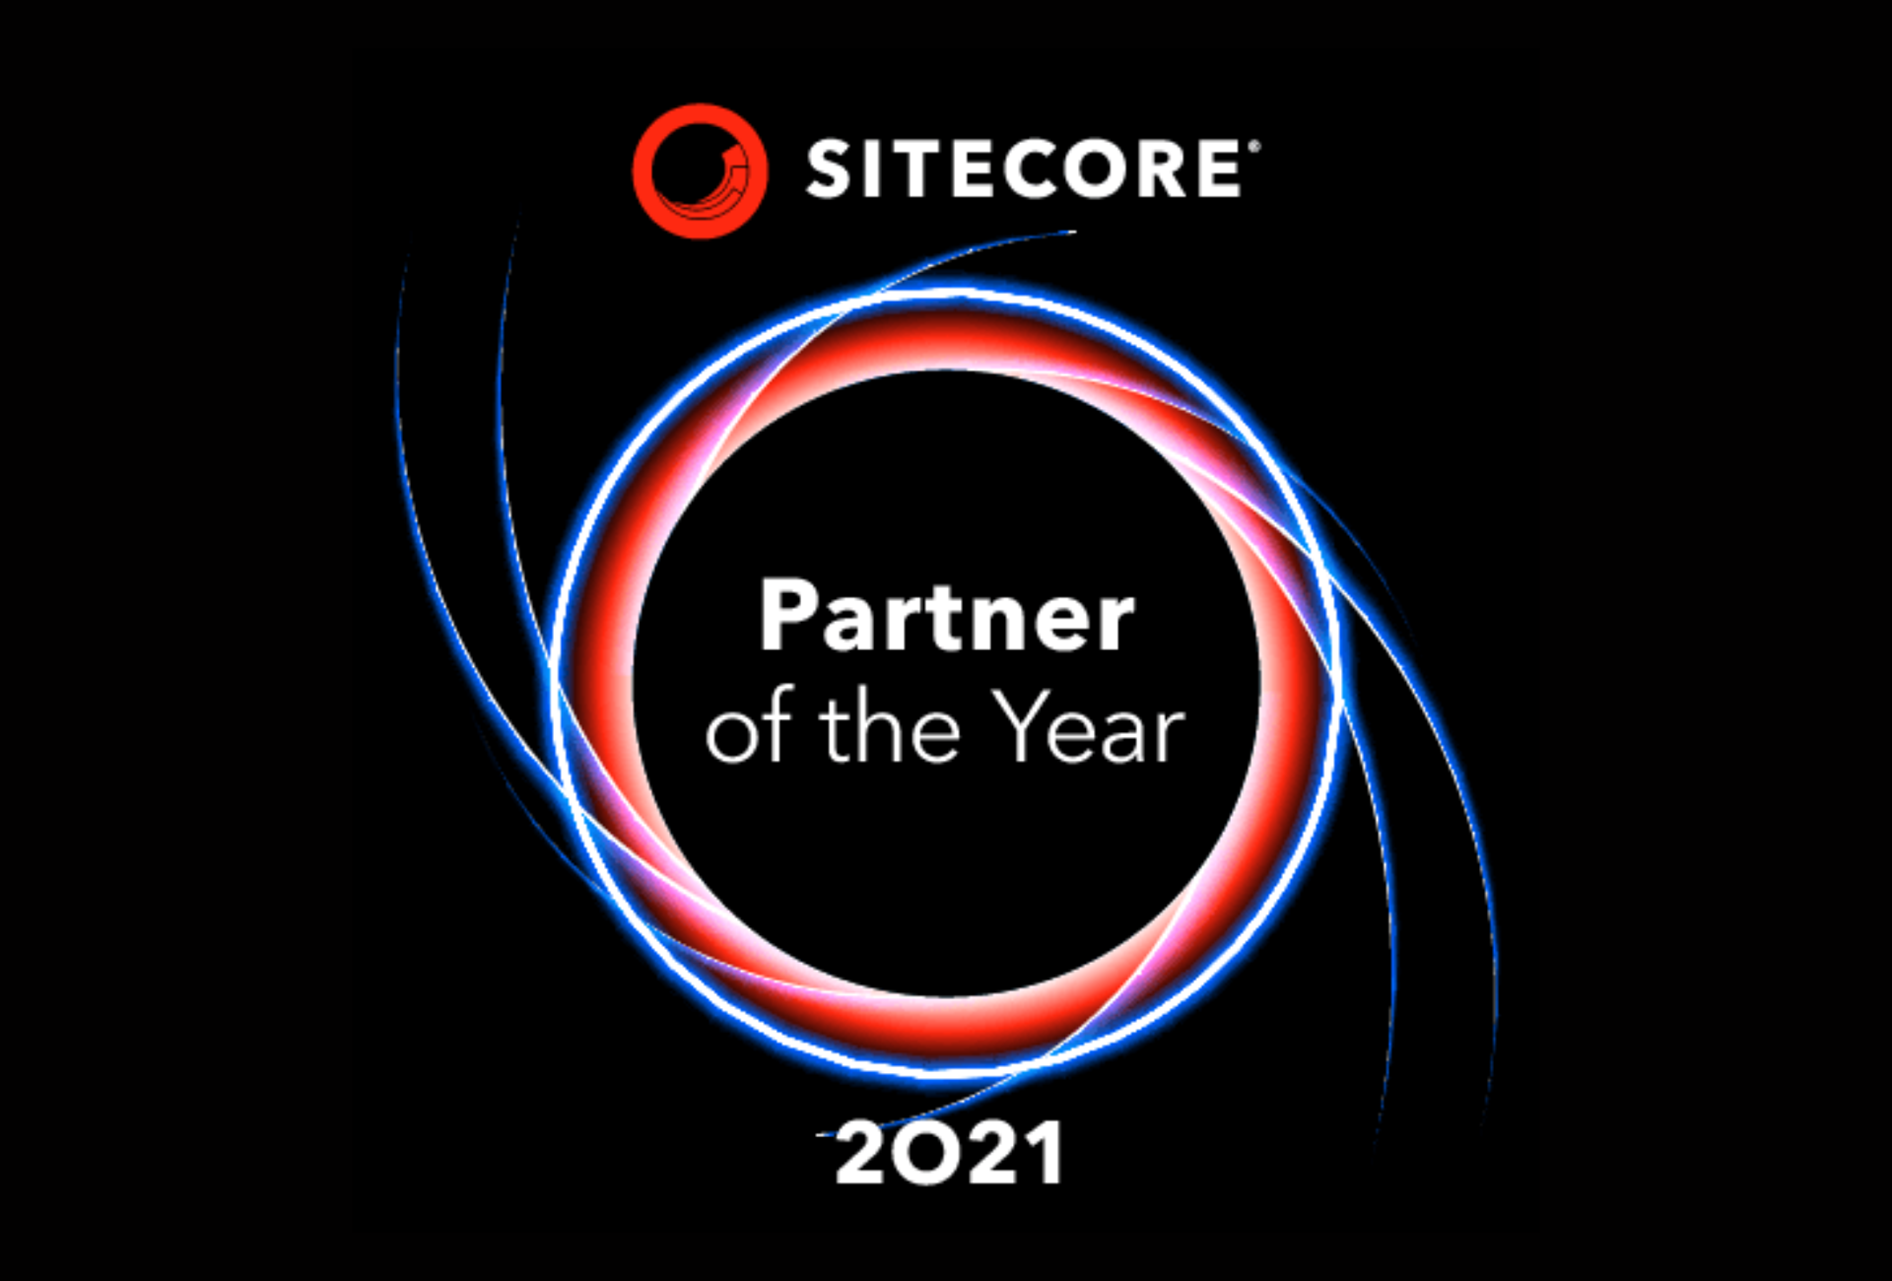 Sitecore Partner of the Year 2021